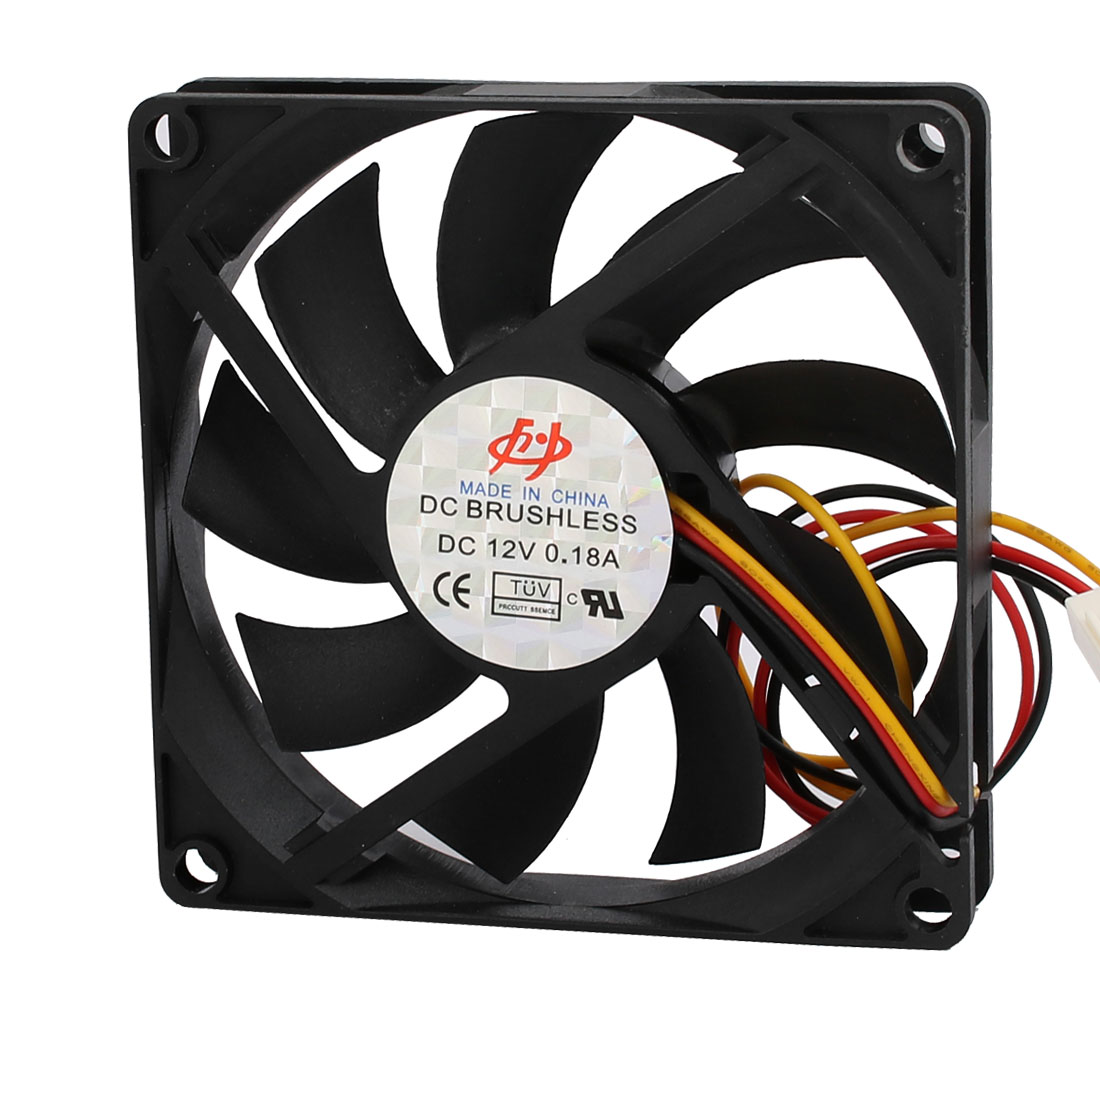 DC 12V 0.18A 9 Vanes Brushless Cooling Fan 80mm x 80mm x 15mm Black